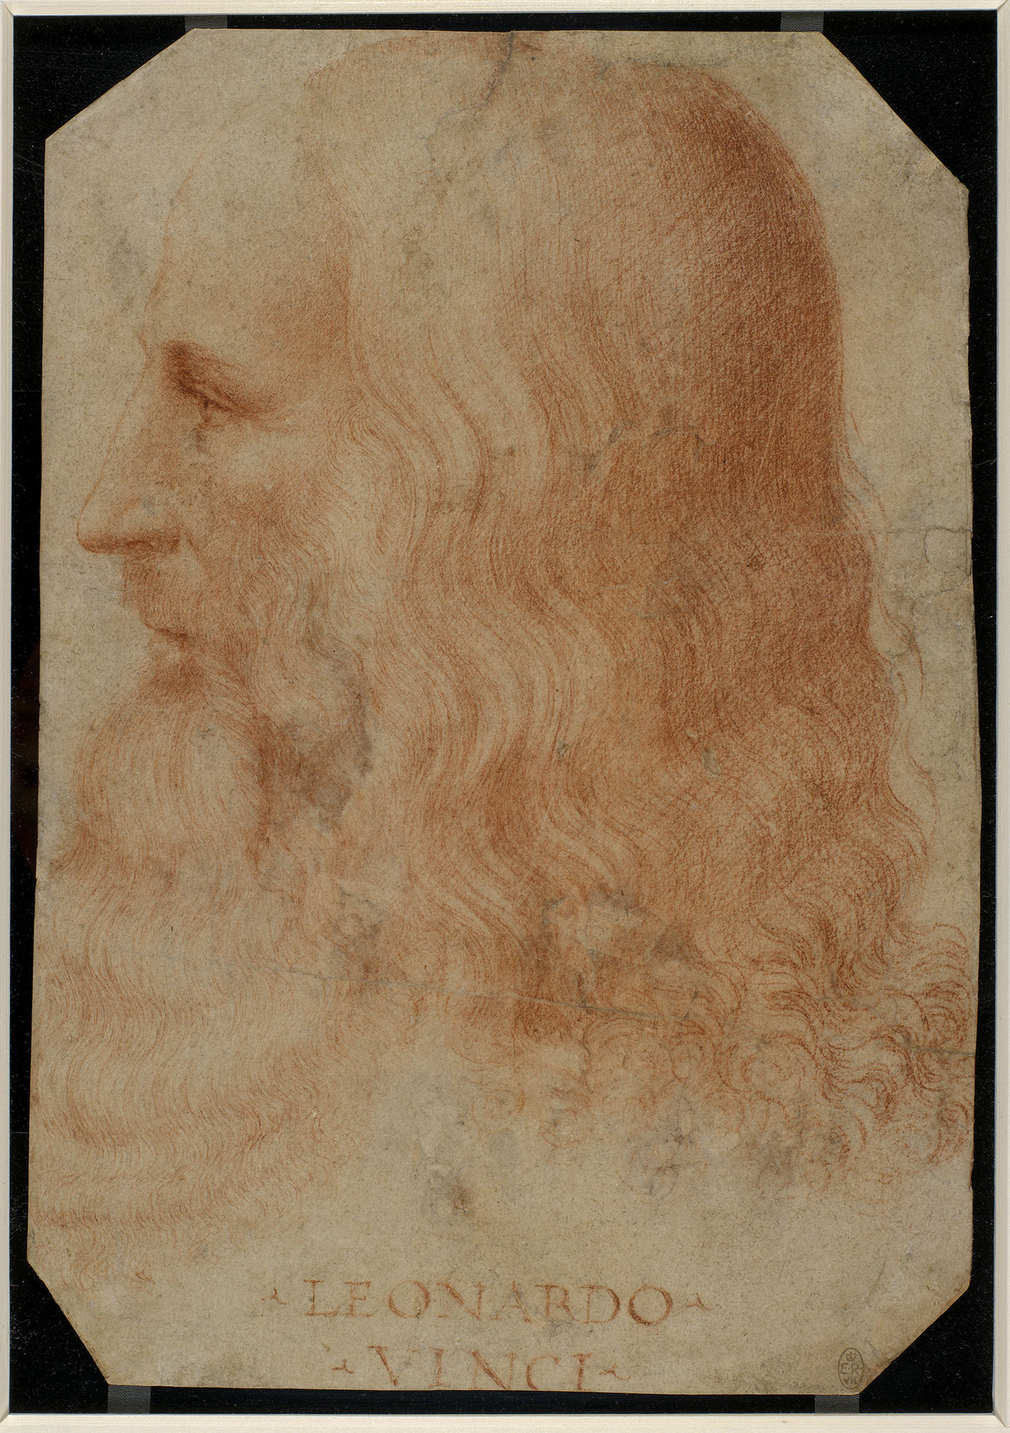 A portrait drawing of the head of Leonardo da Vinci, turned in profile to the left; with long wavy hair and a flowing beard.&nbsp;Inscribed below:&nbsp;LEONARDO&nbsp;/ VINCI.<br /><br />This is the only reliable surviving portrait of Leonardo da Vinci (14